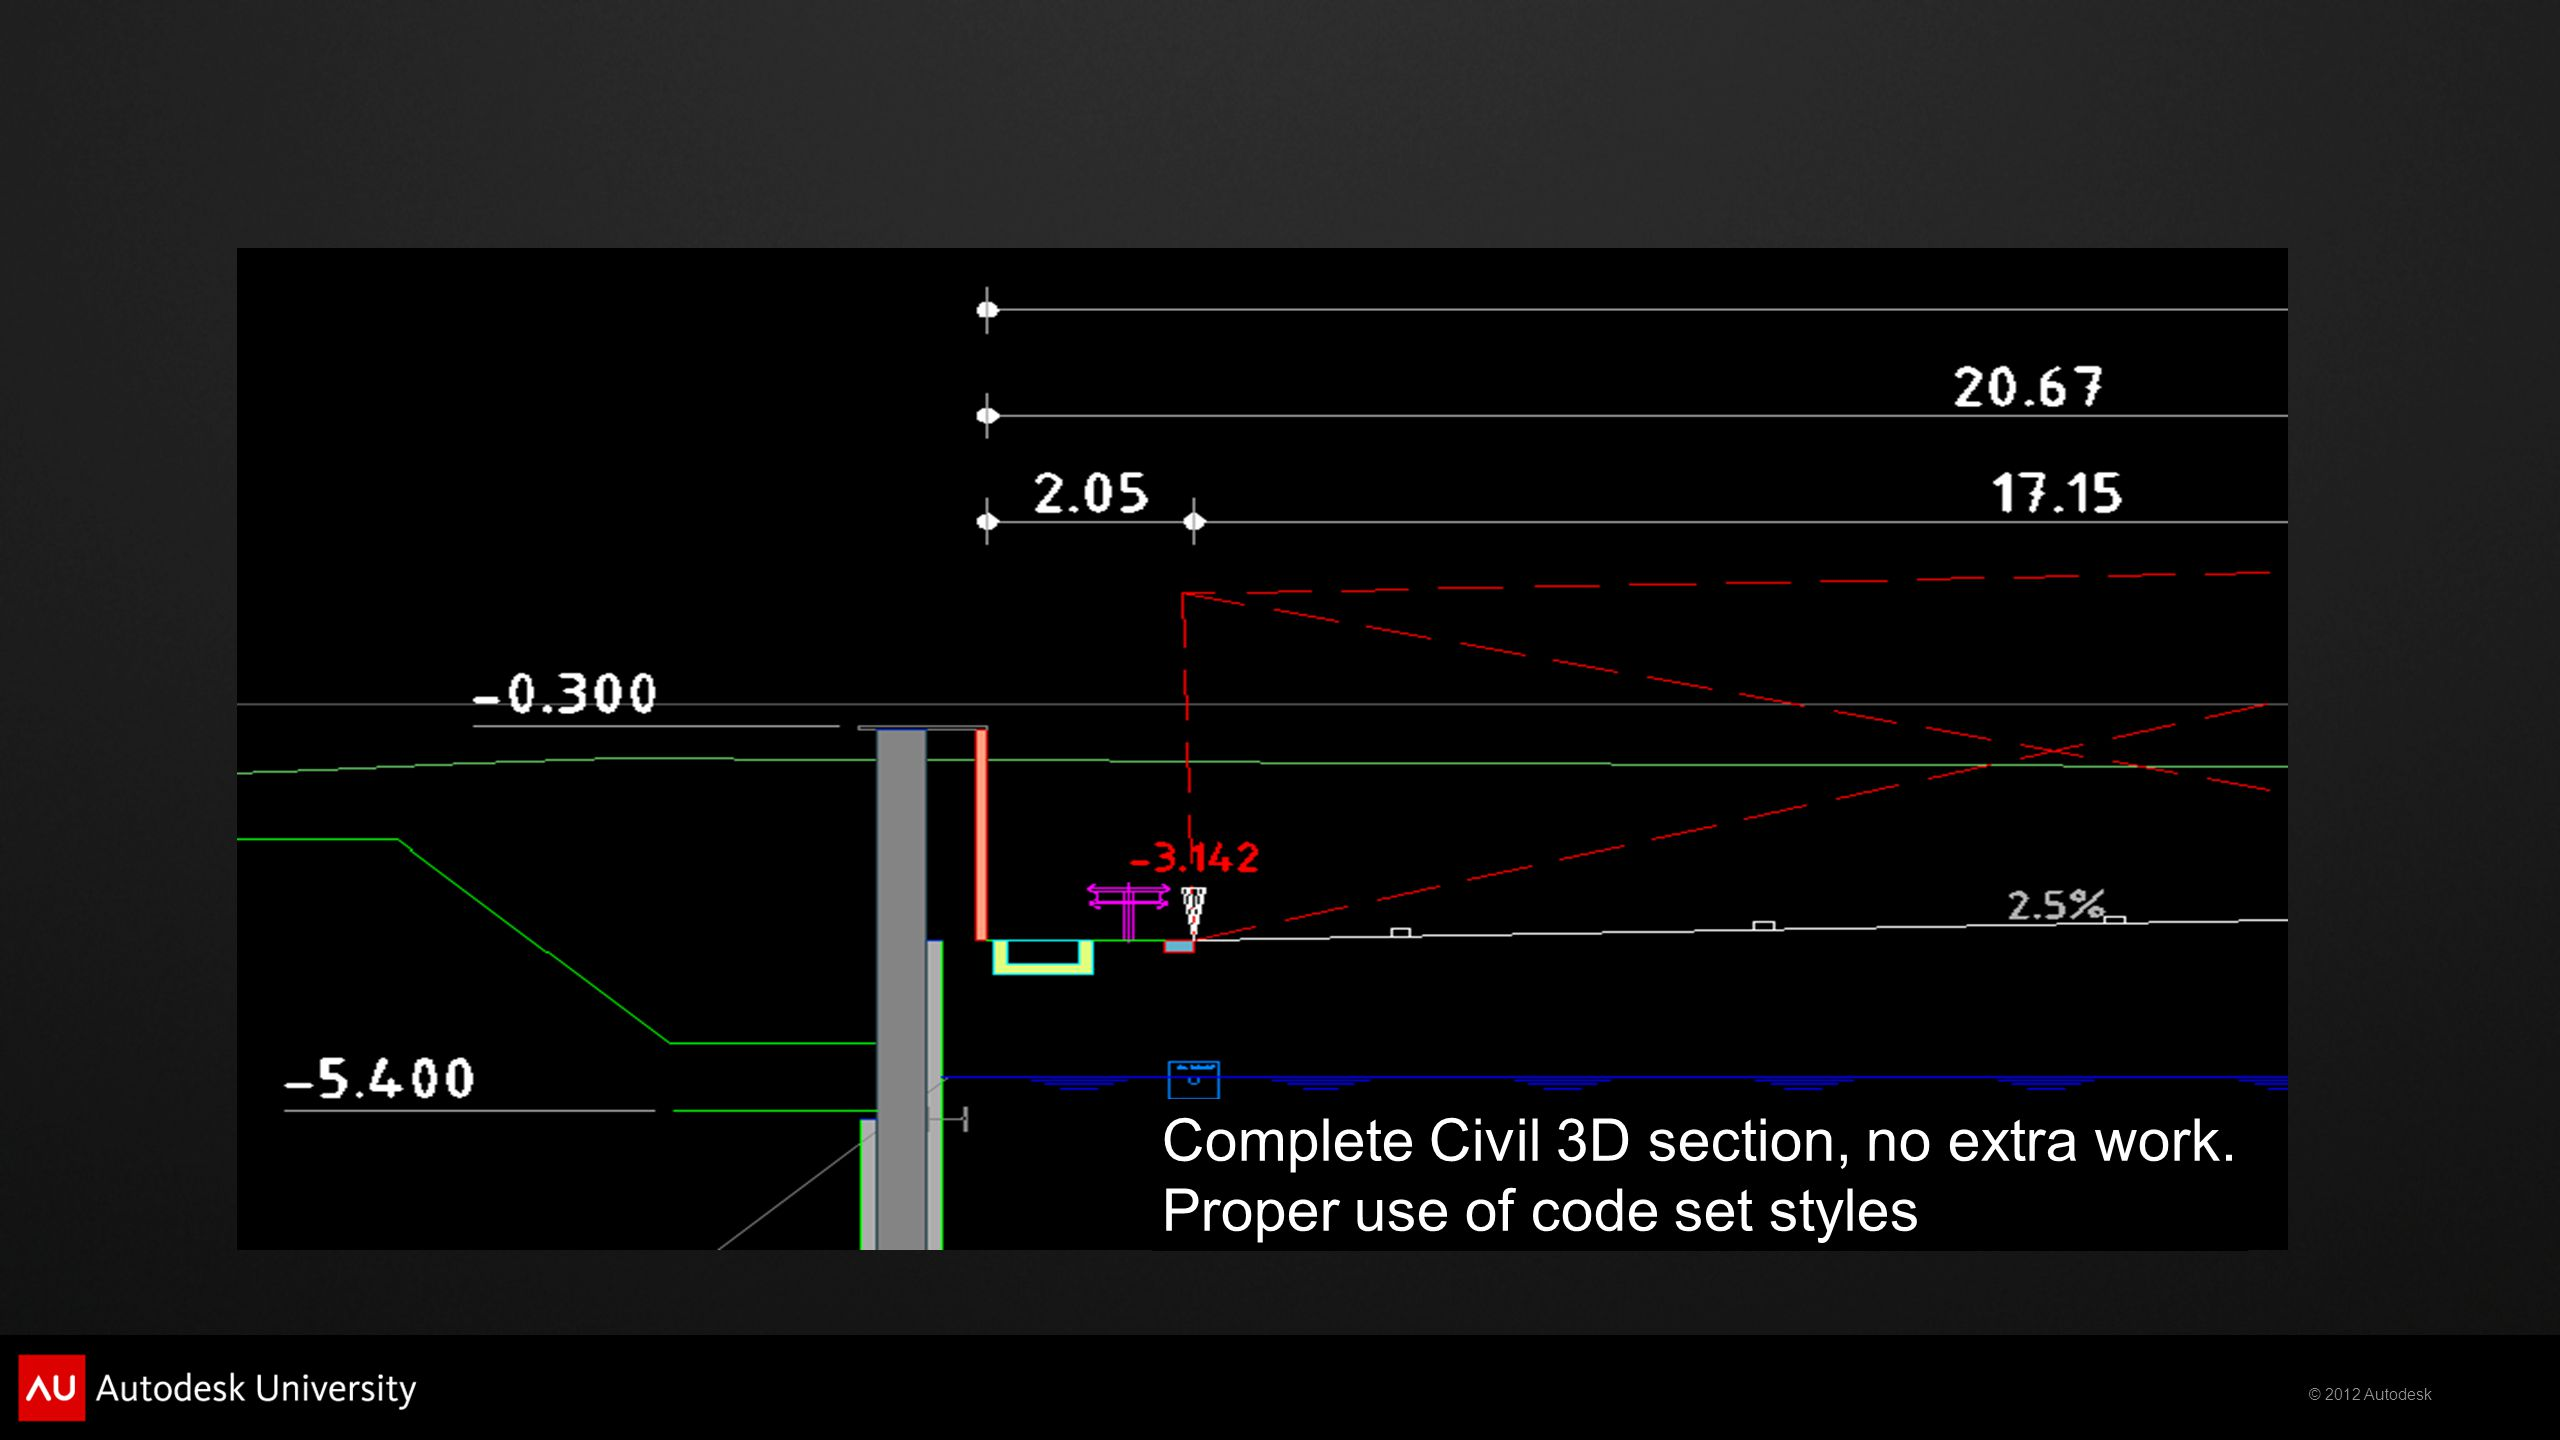 © 2012 Autodesk Complete Civil 3D section, no extra work. Proper use of code set styles